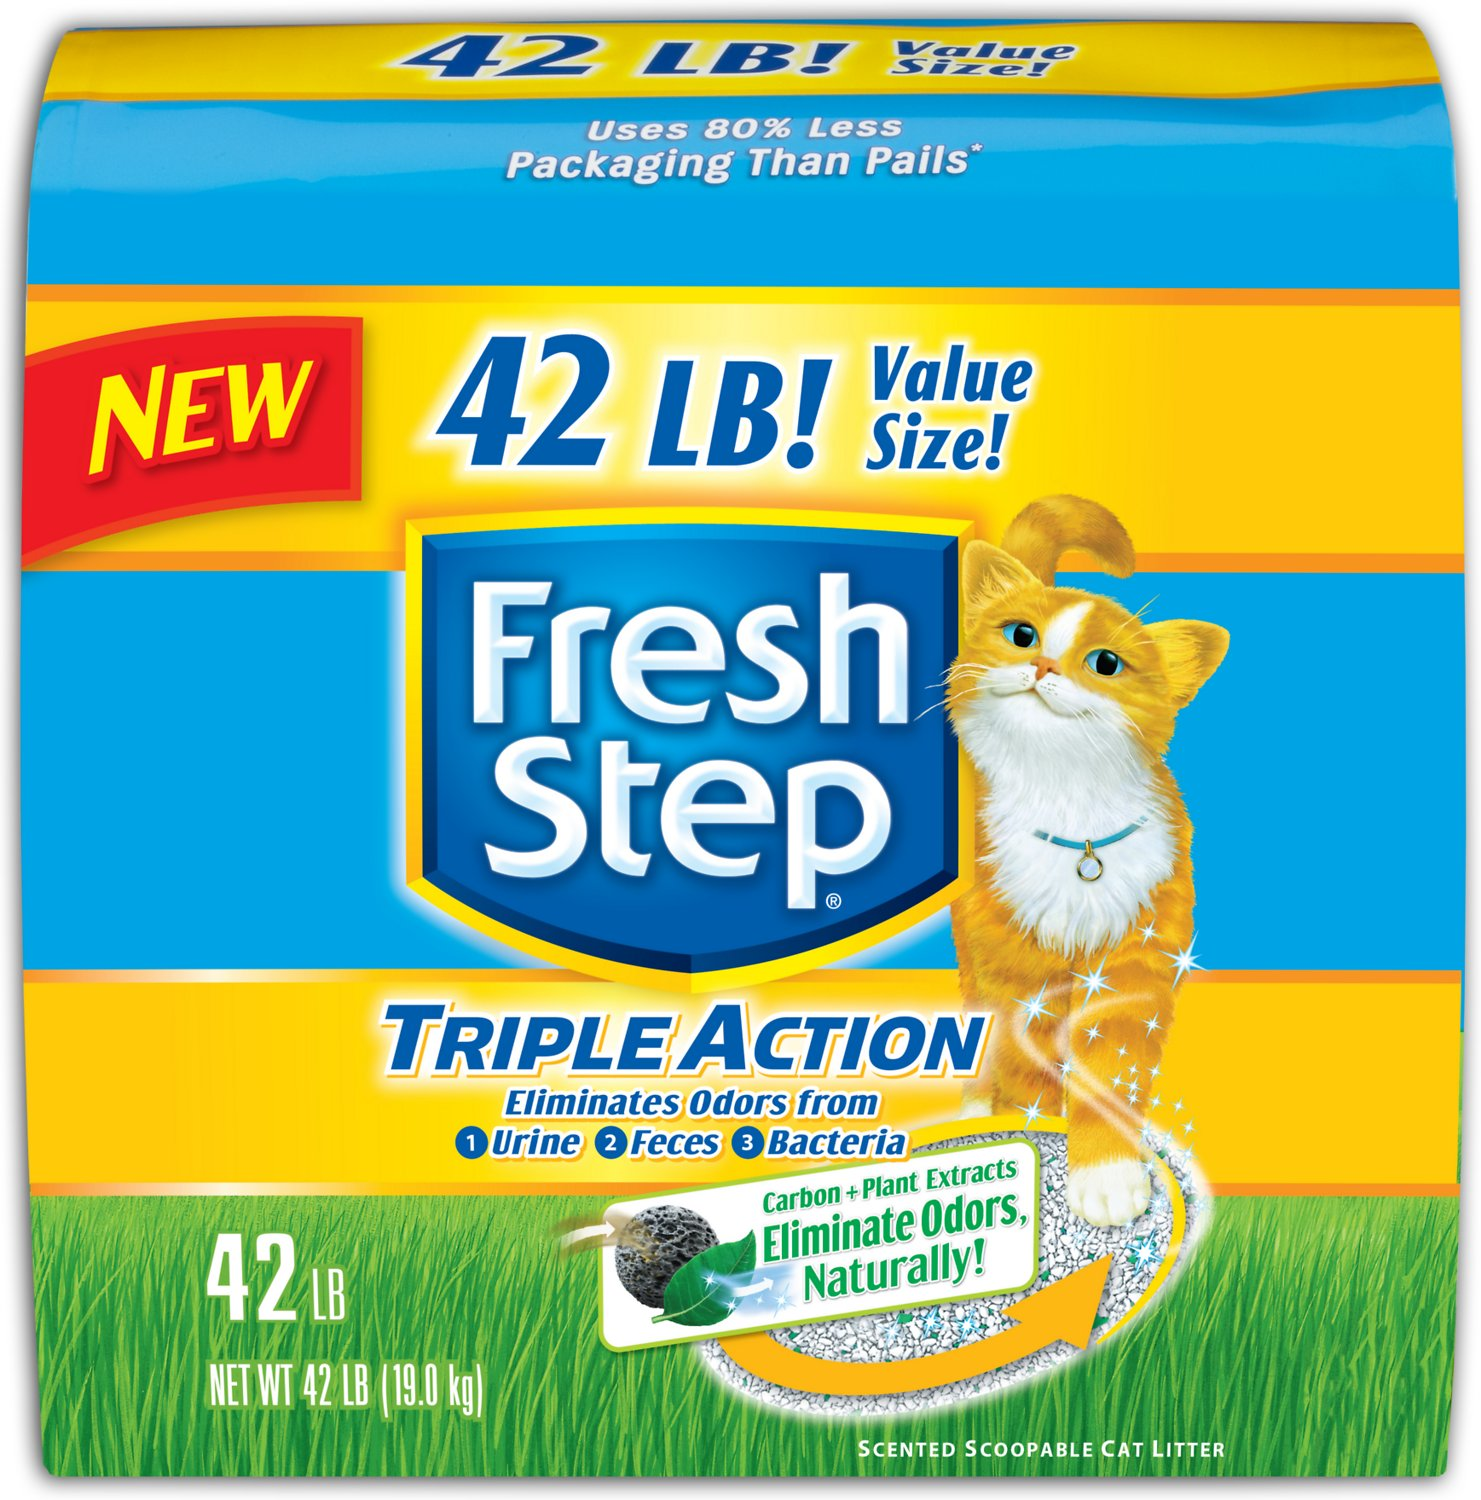 Fresh Step Triple Action Scented Clumping Cat Litter Image